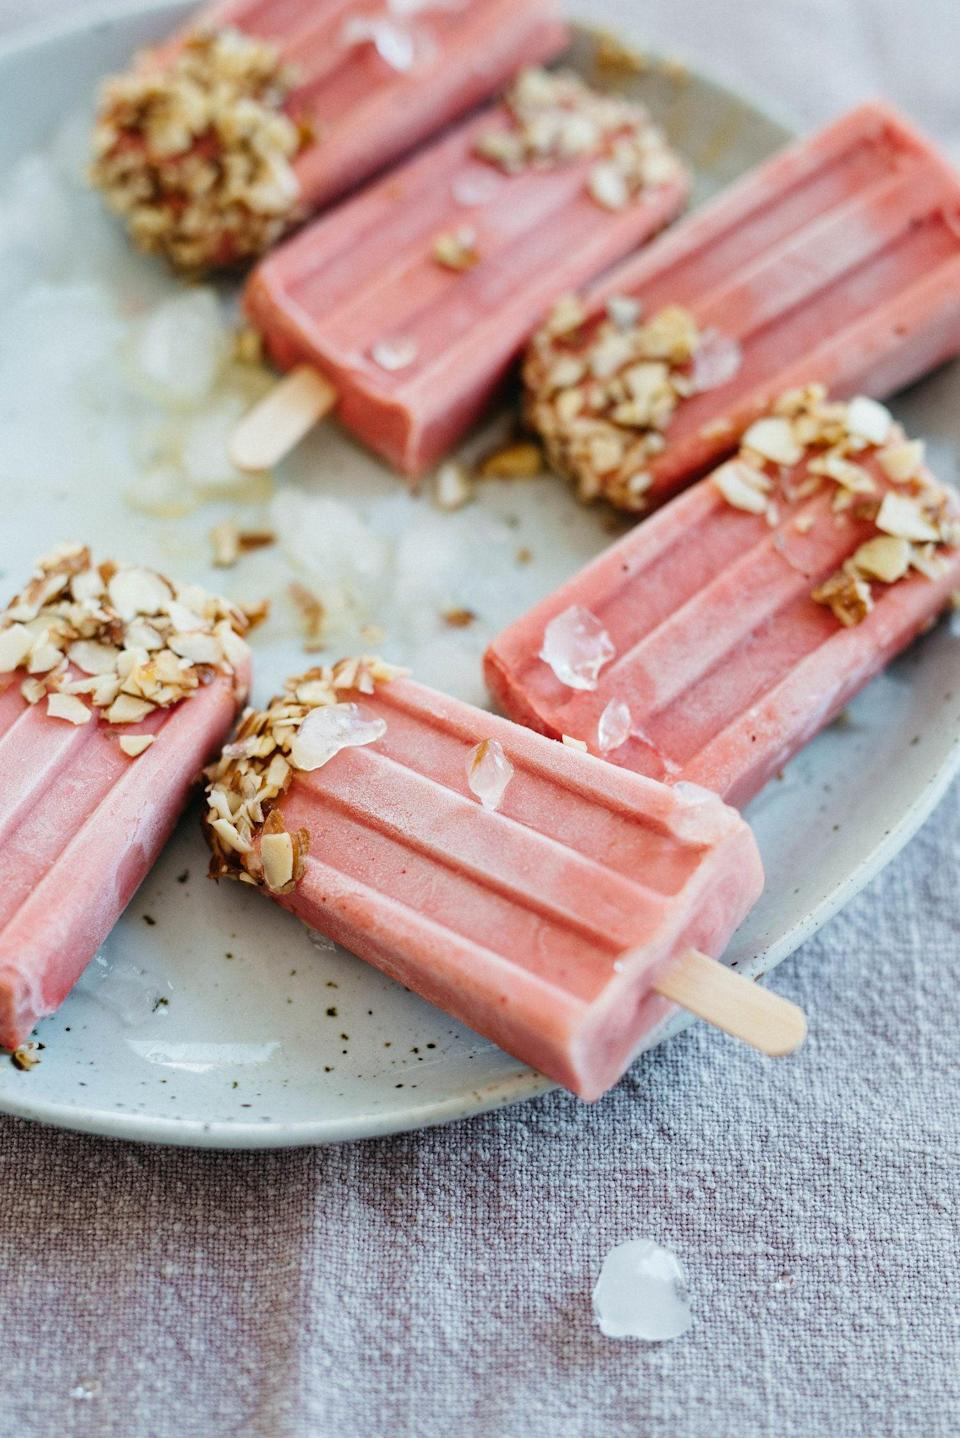 """<p>Tomatoes may not <em>seem</em> like the foundation of a good dessert, but these yogurt pops deliver. They're sweetened with just a touch of coconut nectar and topped with crunchy sliced almonds.</p> <p><strong>Get the recipe:</strong> <a href=""""http://www.dollyandoatmeal.com/blog/2017/6/28/raspberry-tomato-yogurt-pops"""" class=""""link rapid-noclick-resp"""" rel=""""nofollow noopener"""" target=""""_blank"""" data-ylk=""""slk:raspberry-tomato yogurt popsicles"""">raspberry-tomato yogurt popsicles</a></p>"""